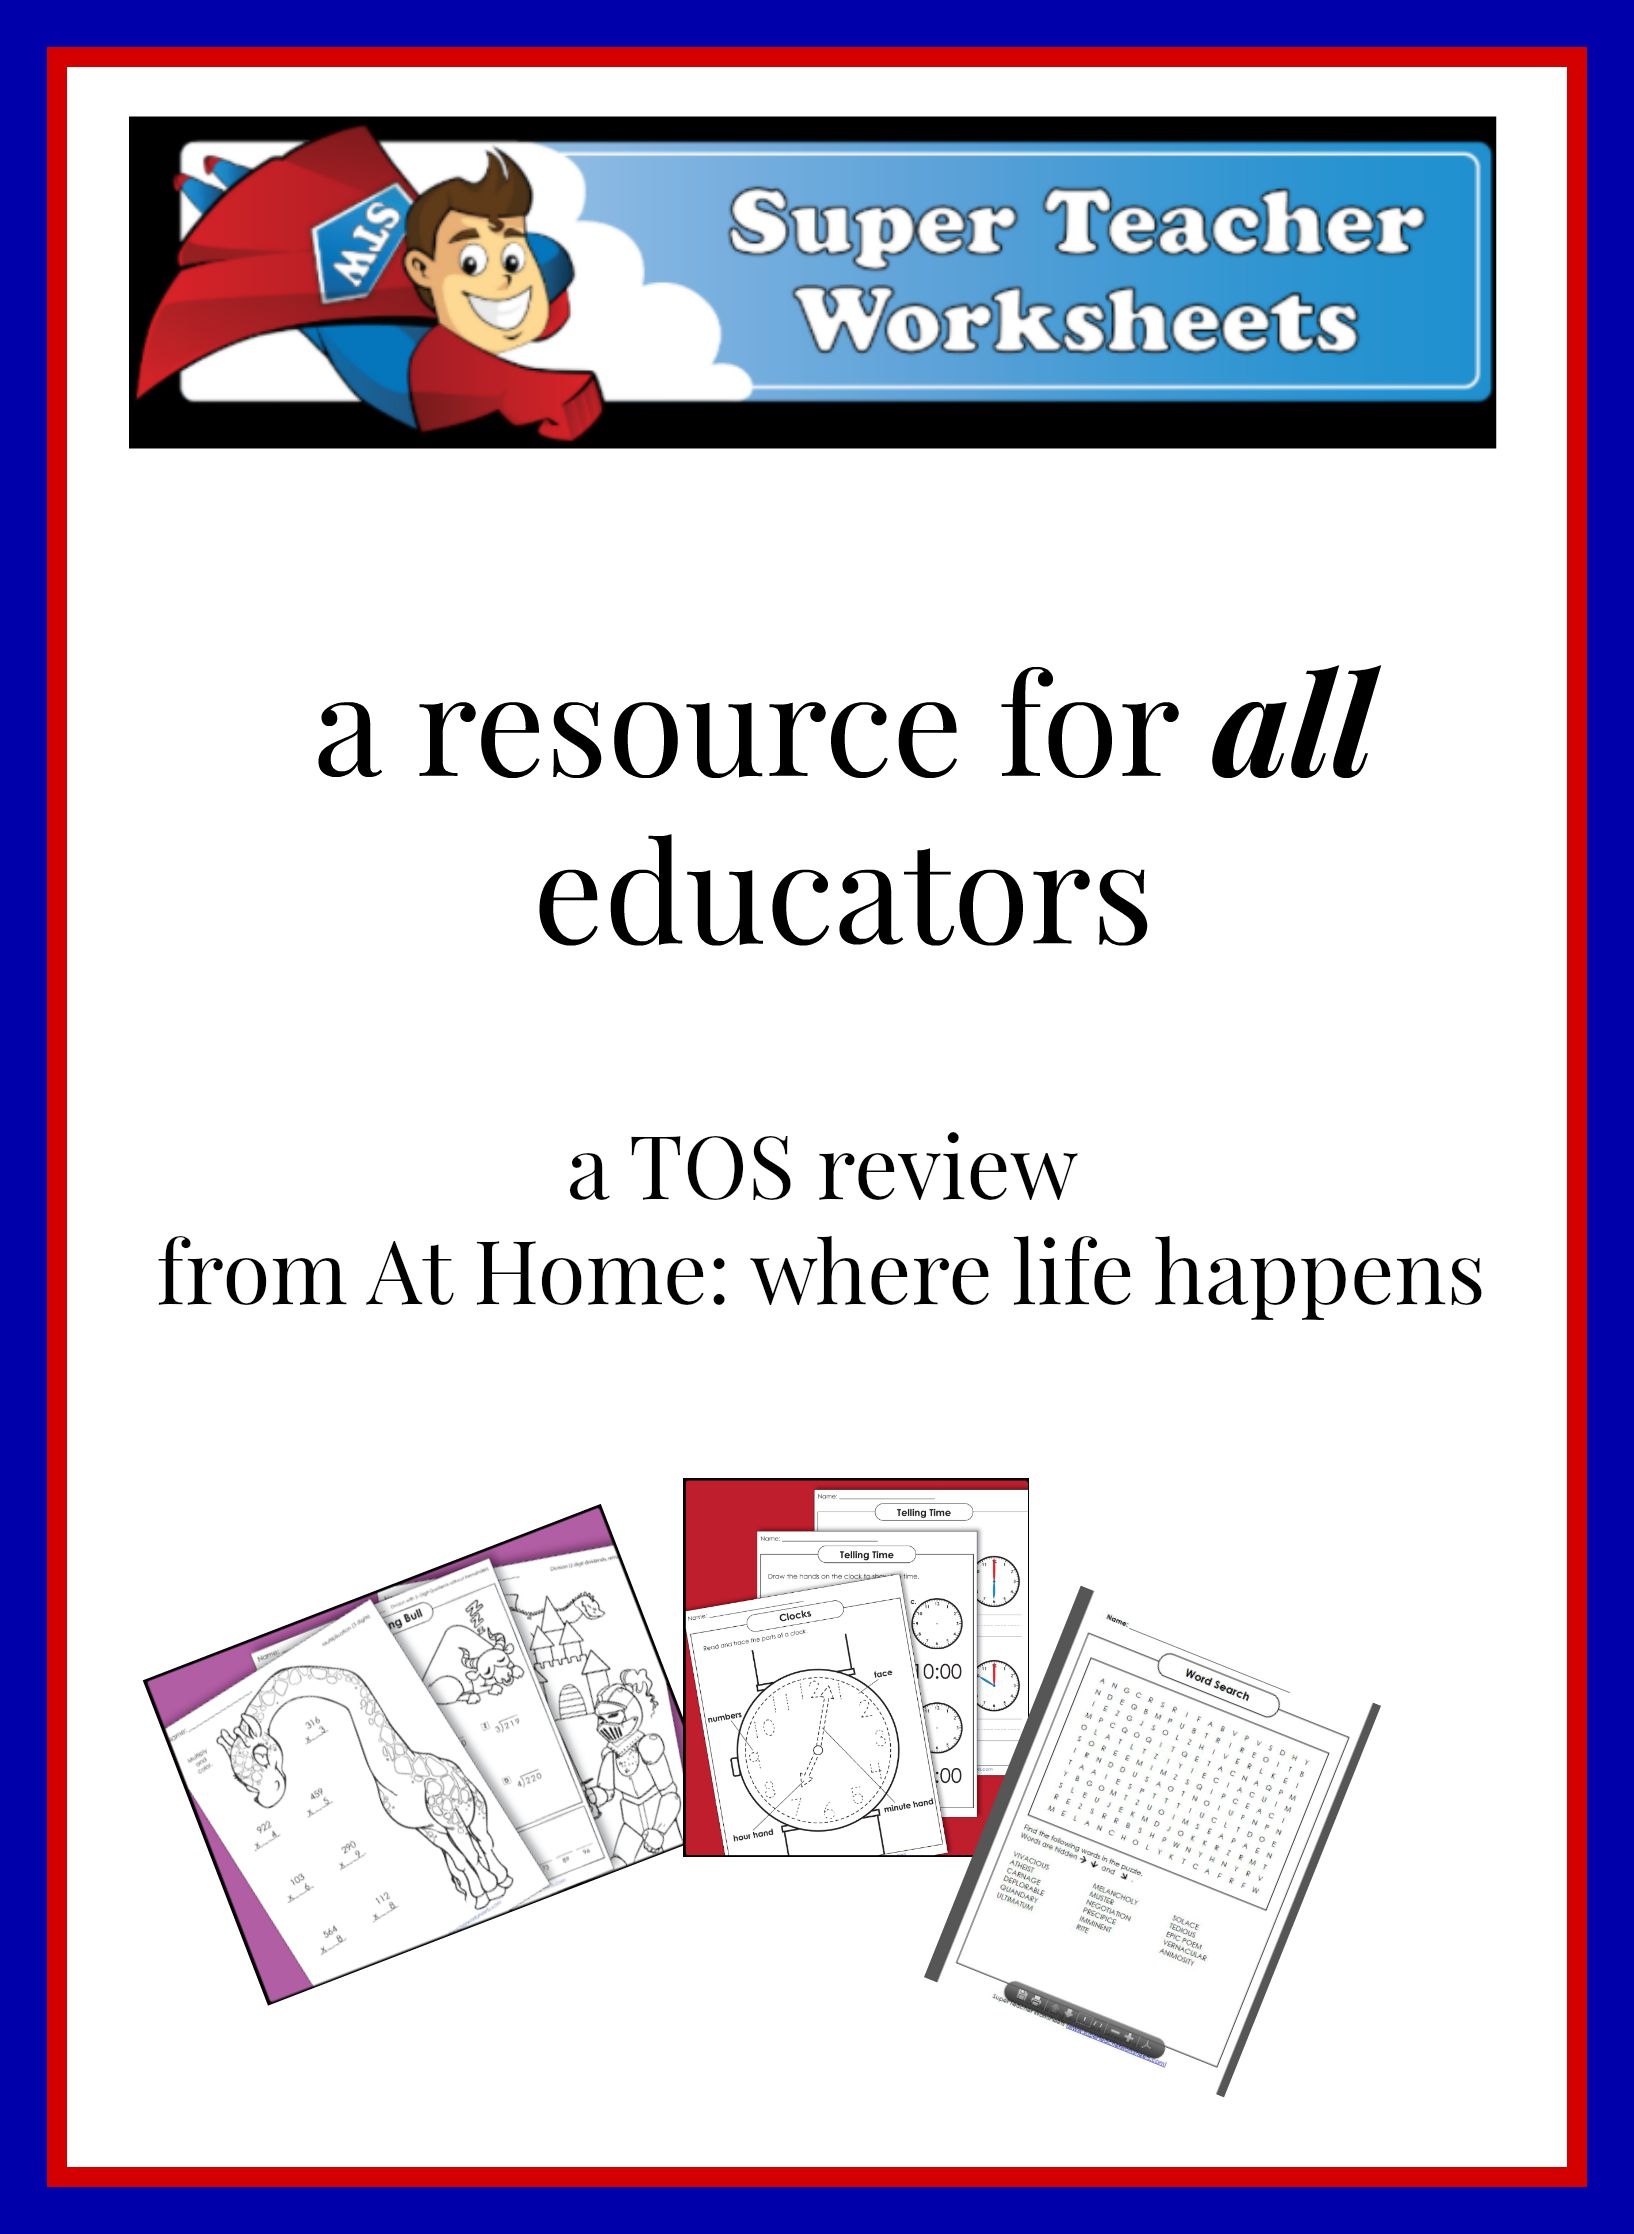 Super Teacher Worksheets ~ a TOS review